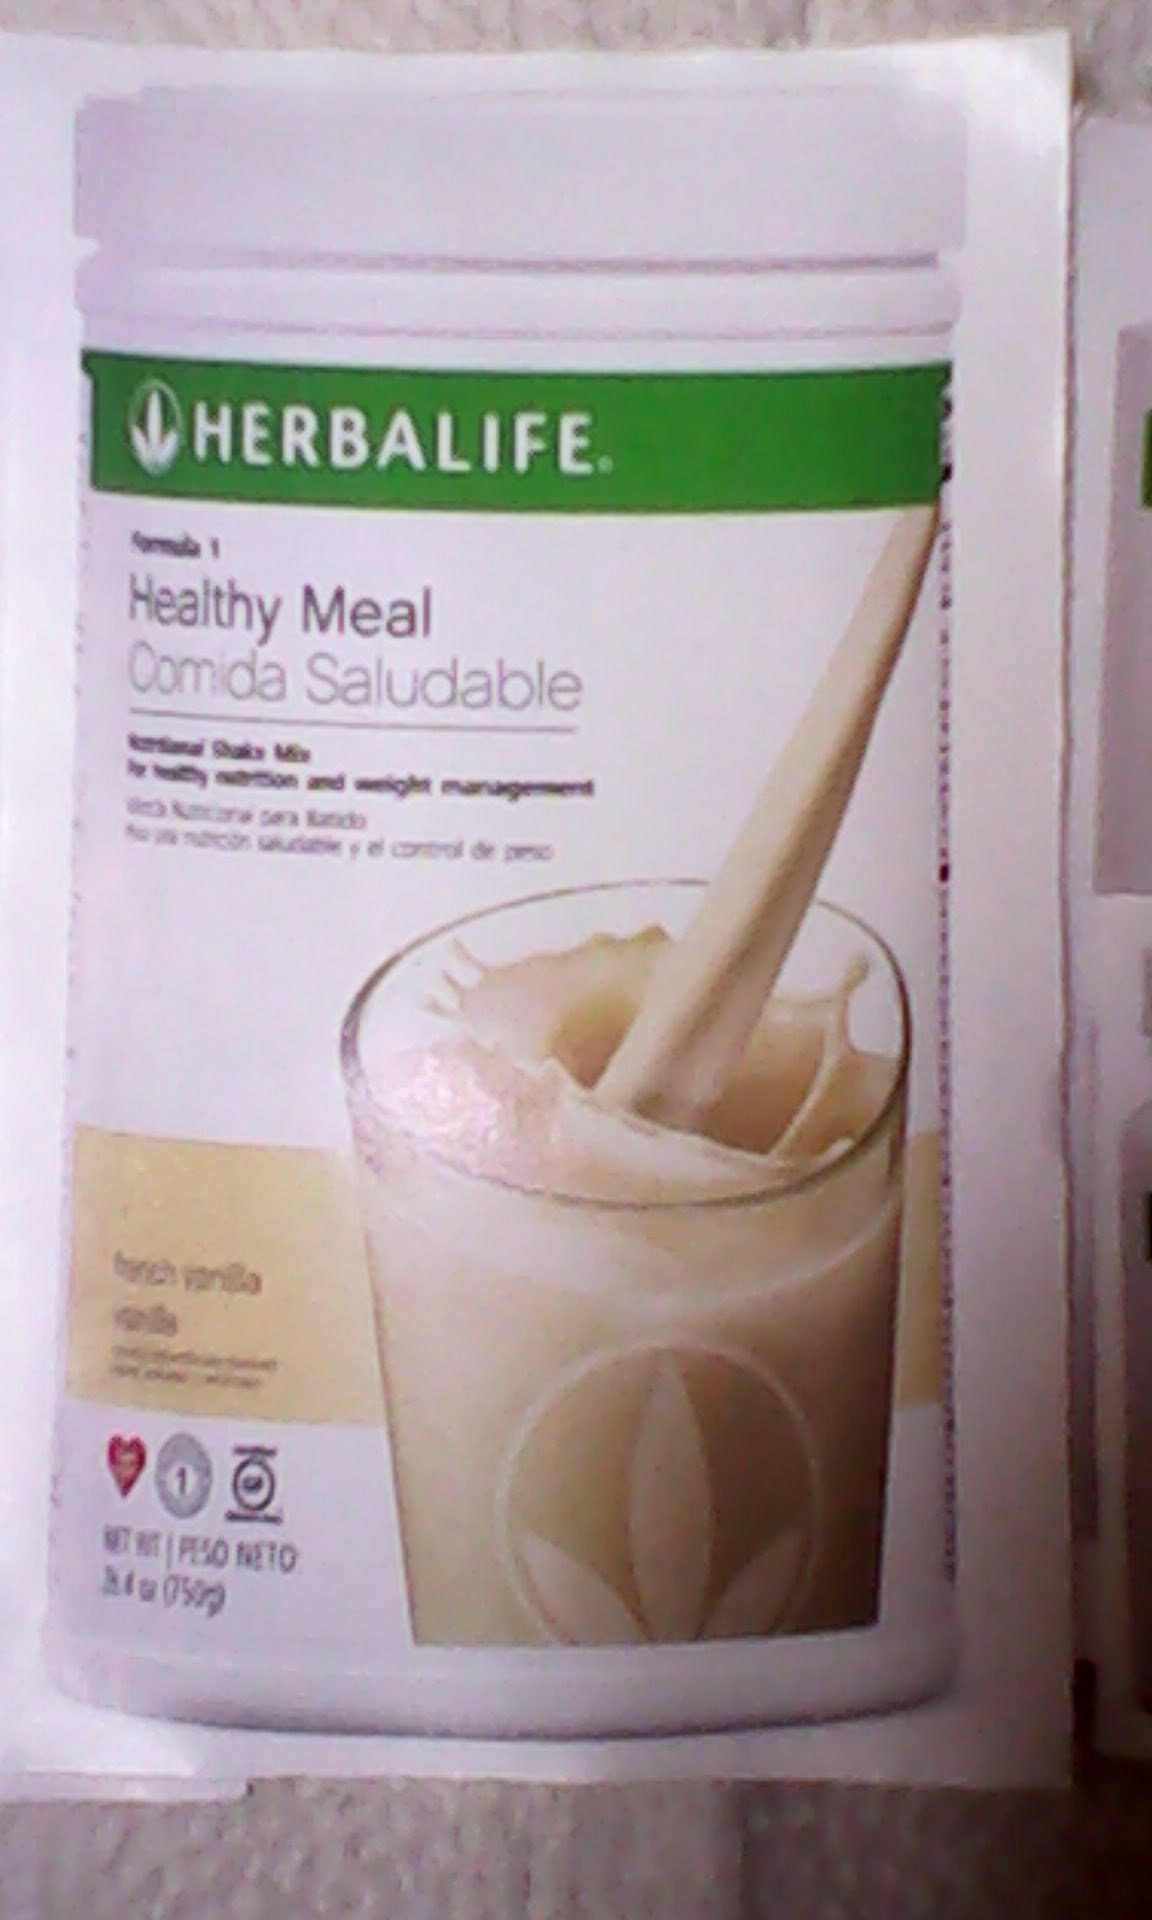 HERBALIFE QUICK COMBO - FORMULA 1 SHAKE MIX (Vanilla), PERSONALIZED PROTEIN, HERBAL ALOE (Mango), HERBAL TEA CONCENTRATE (Raspberry) by Herbalife (Image #2)